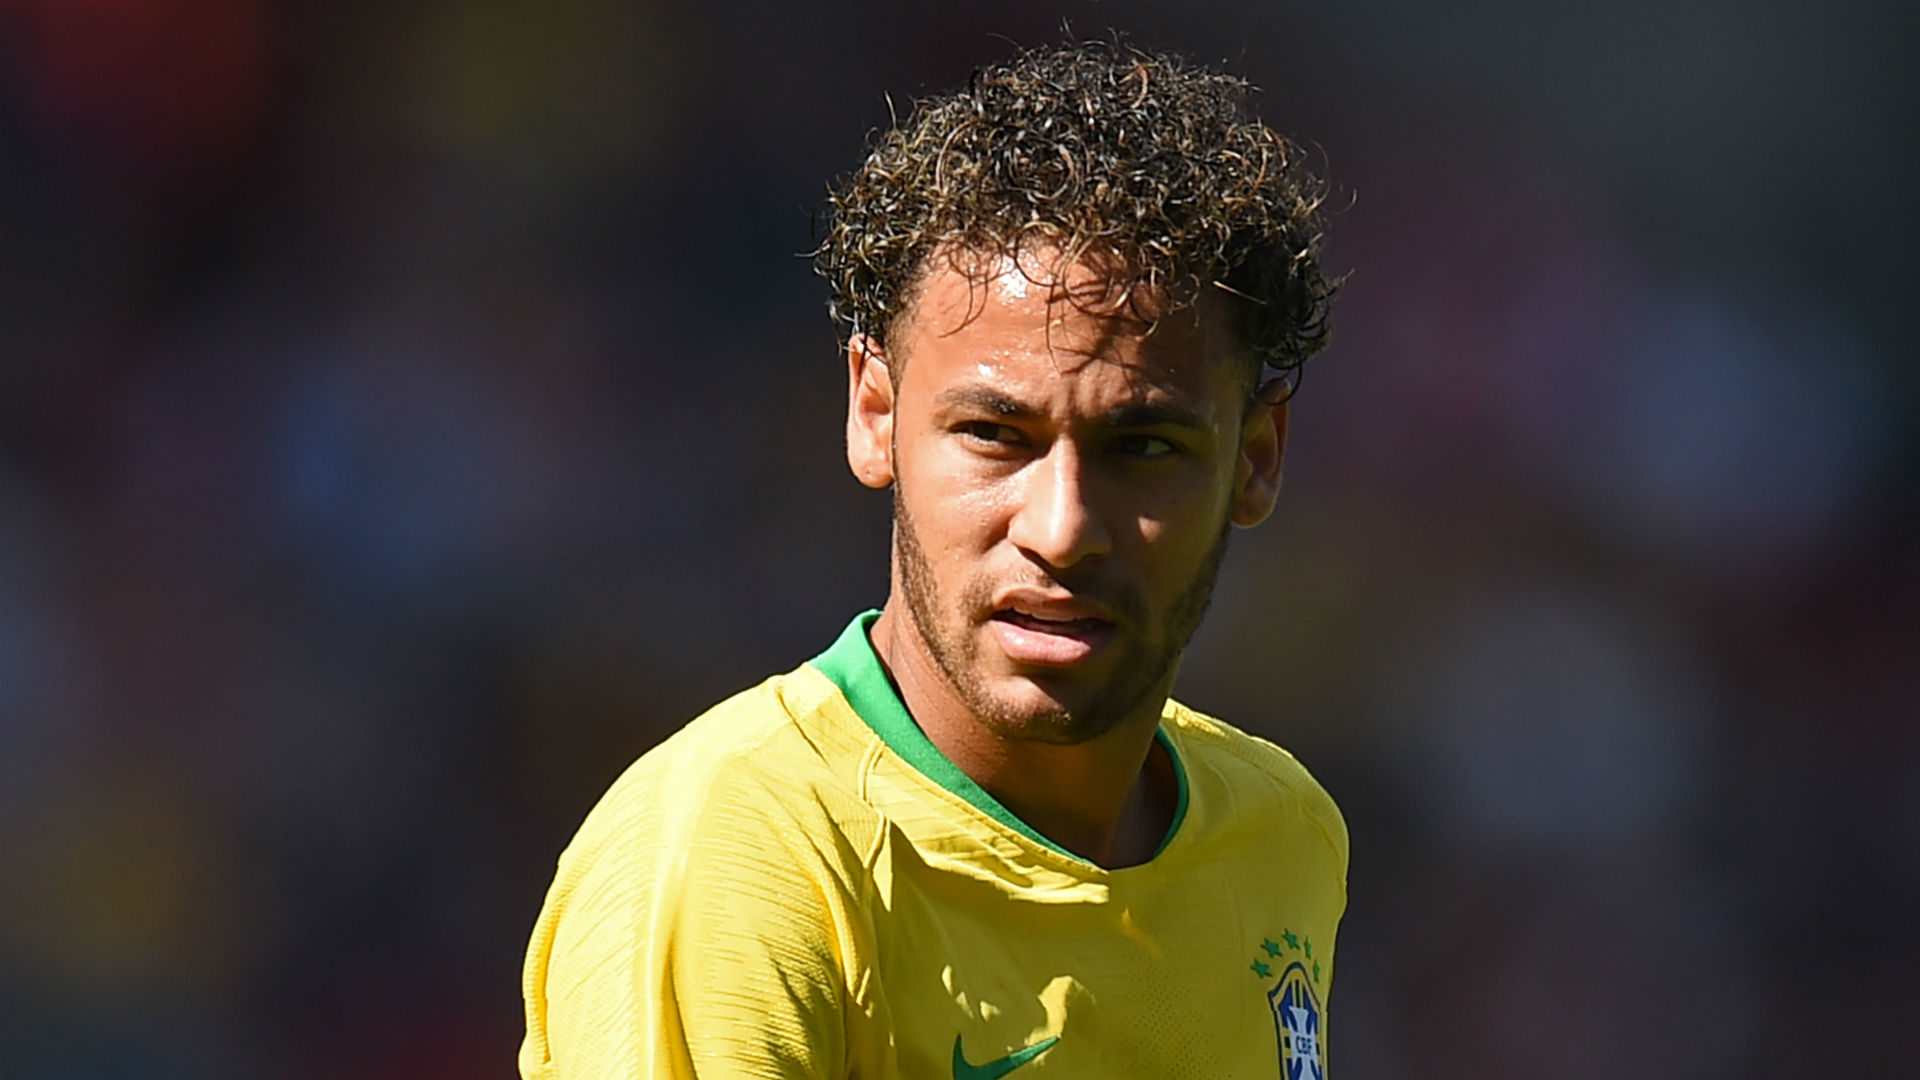 Brazil's Neymar to return from injury against Croatia